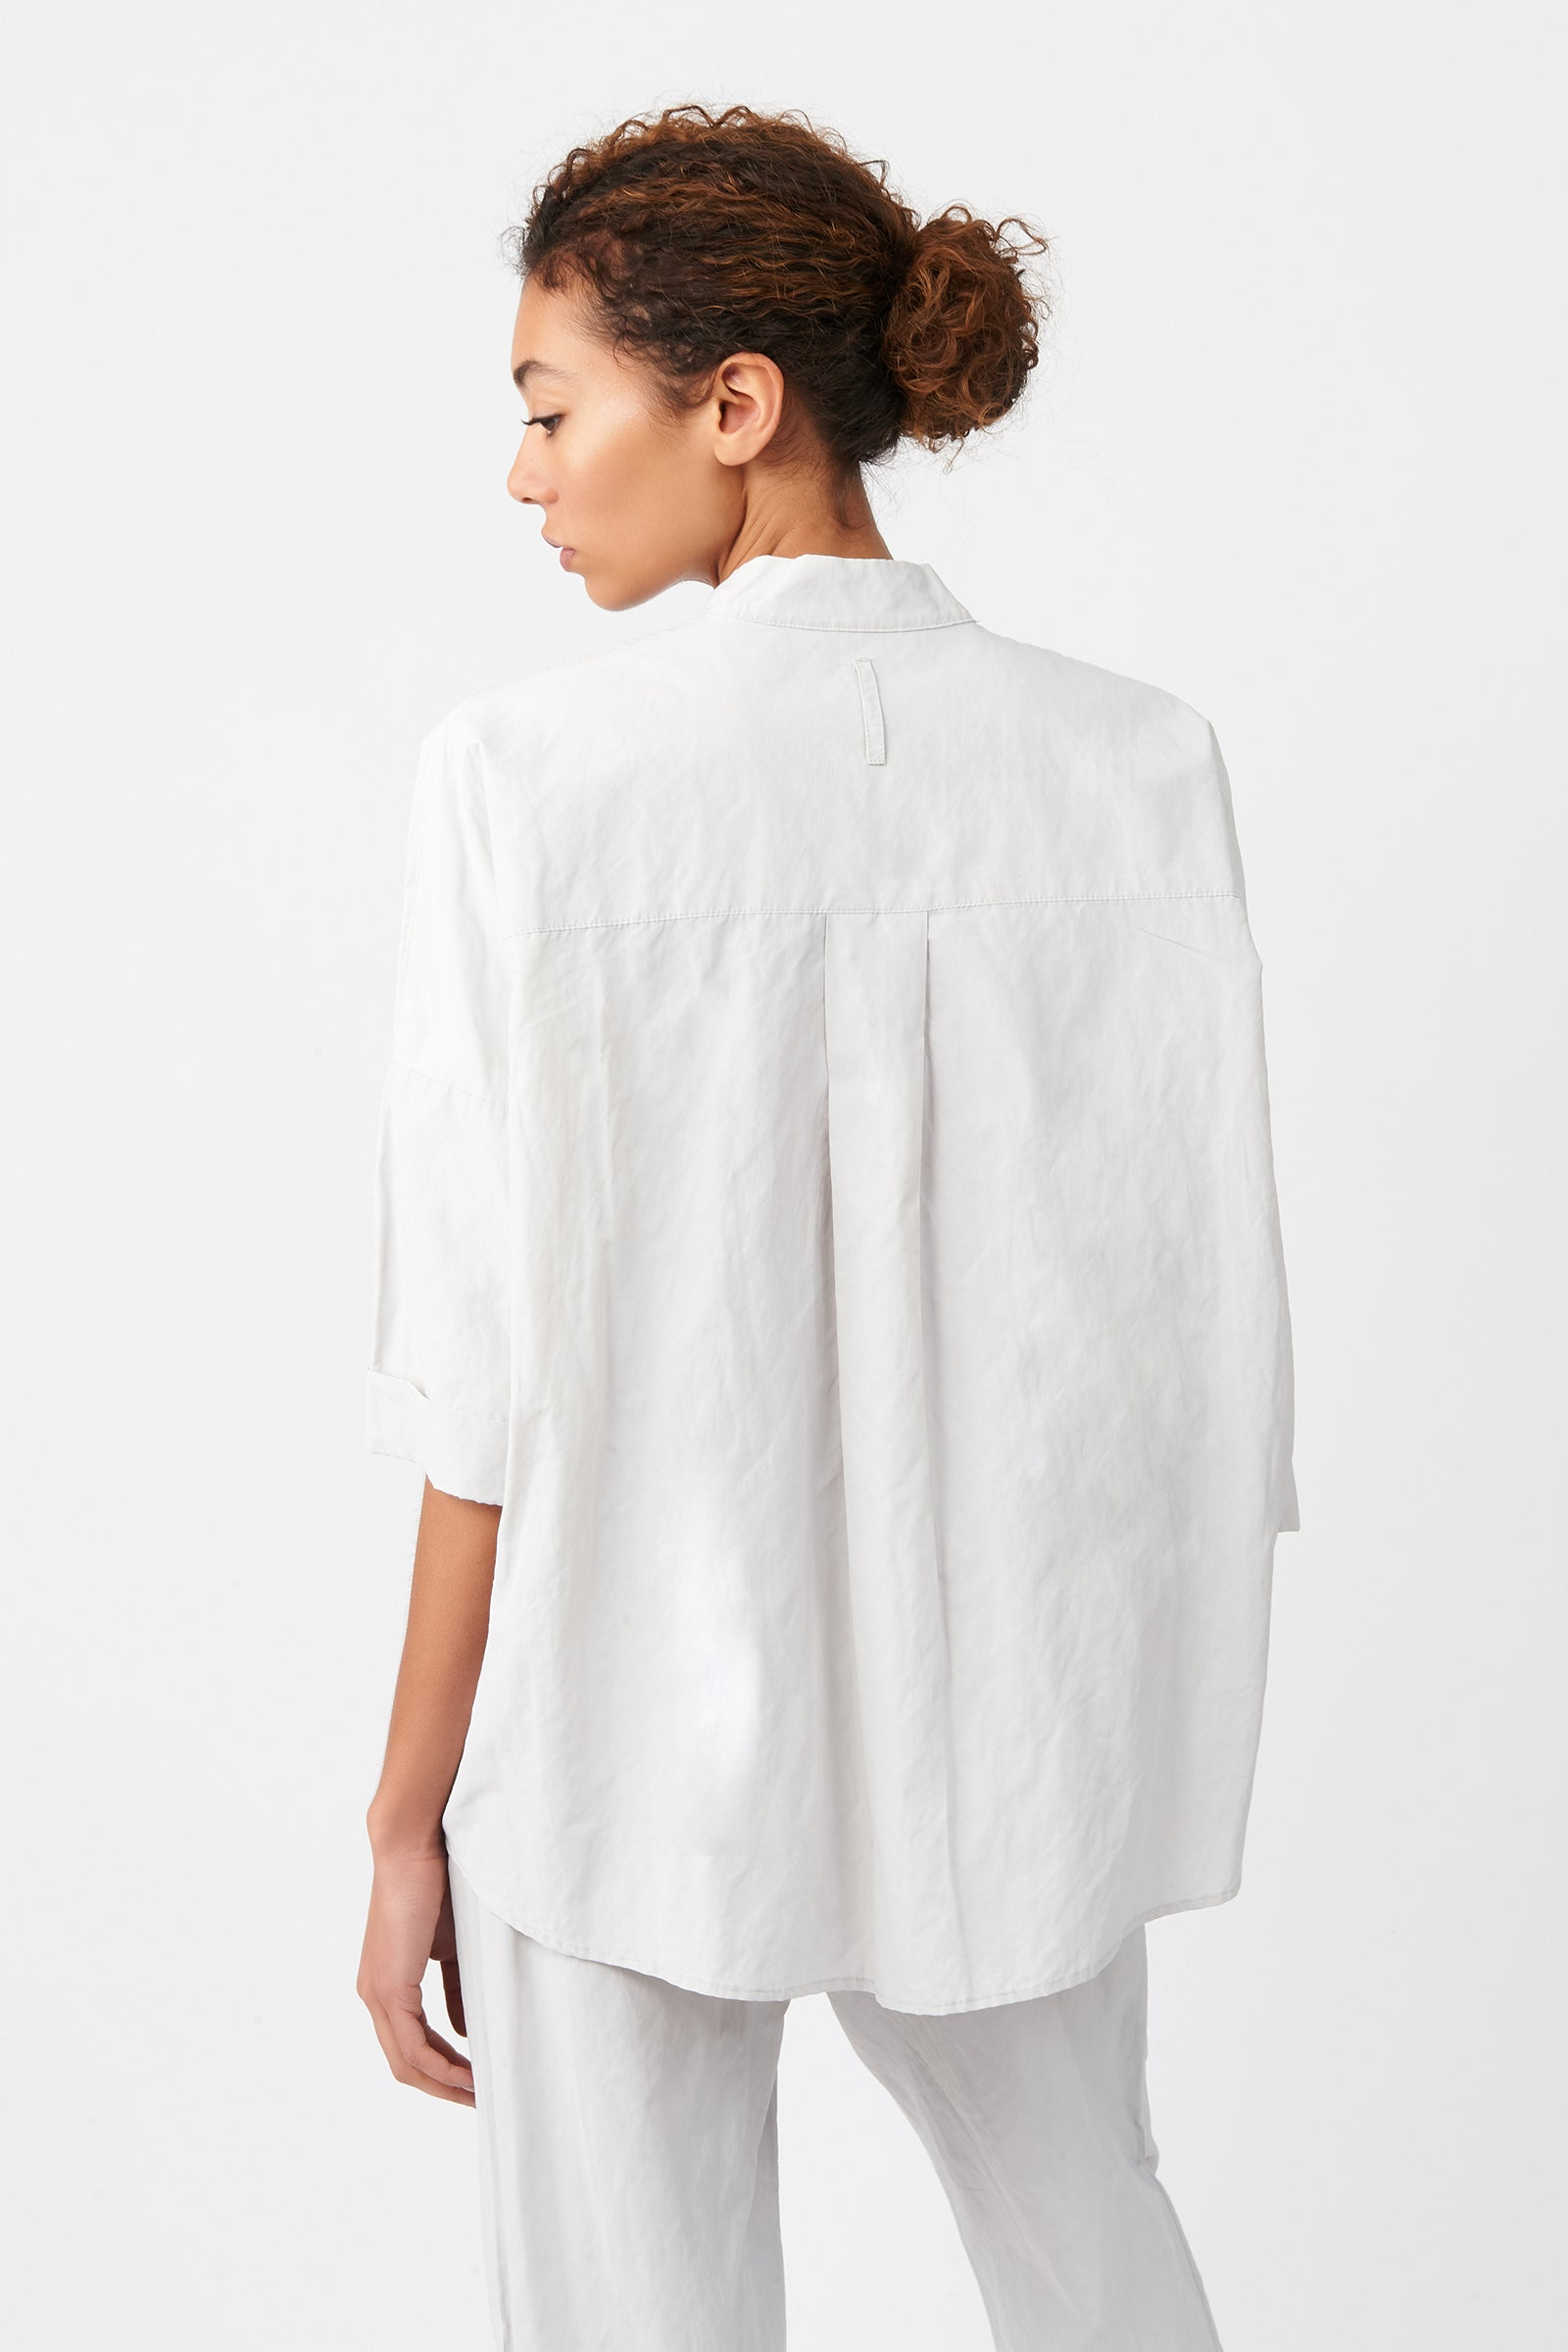 Kal Rieman Pleat Hem Kimono in Stone on Model Side View